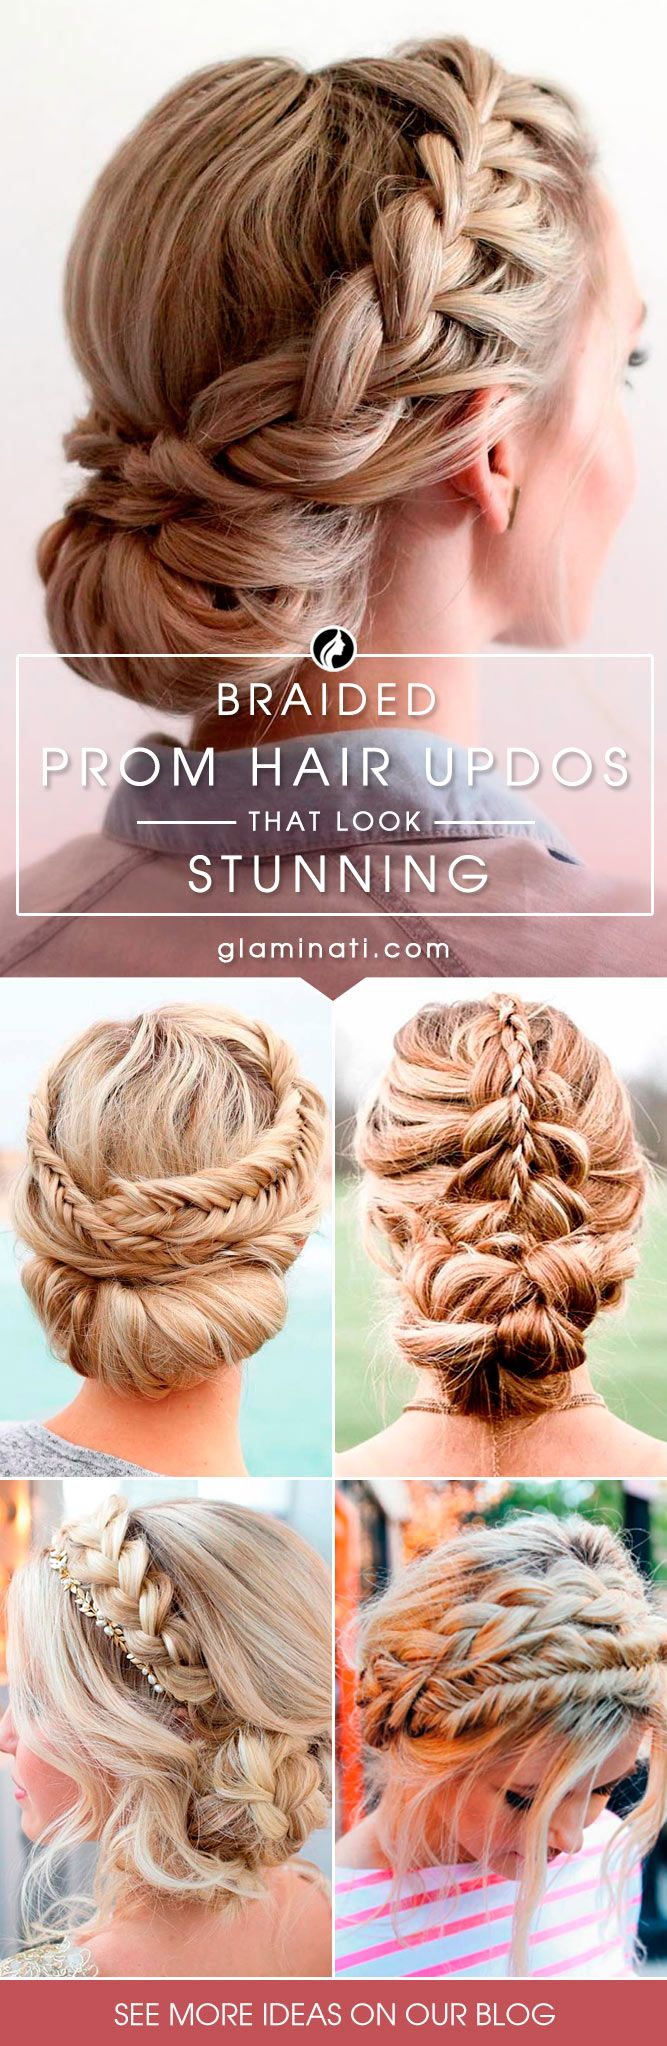 braided prom hair updos to finish your fab look prom hair ideas